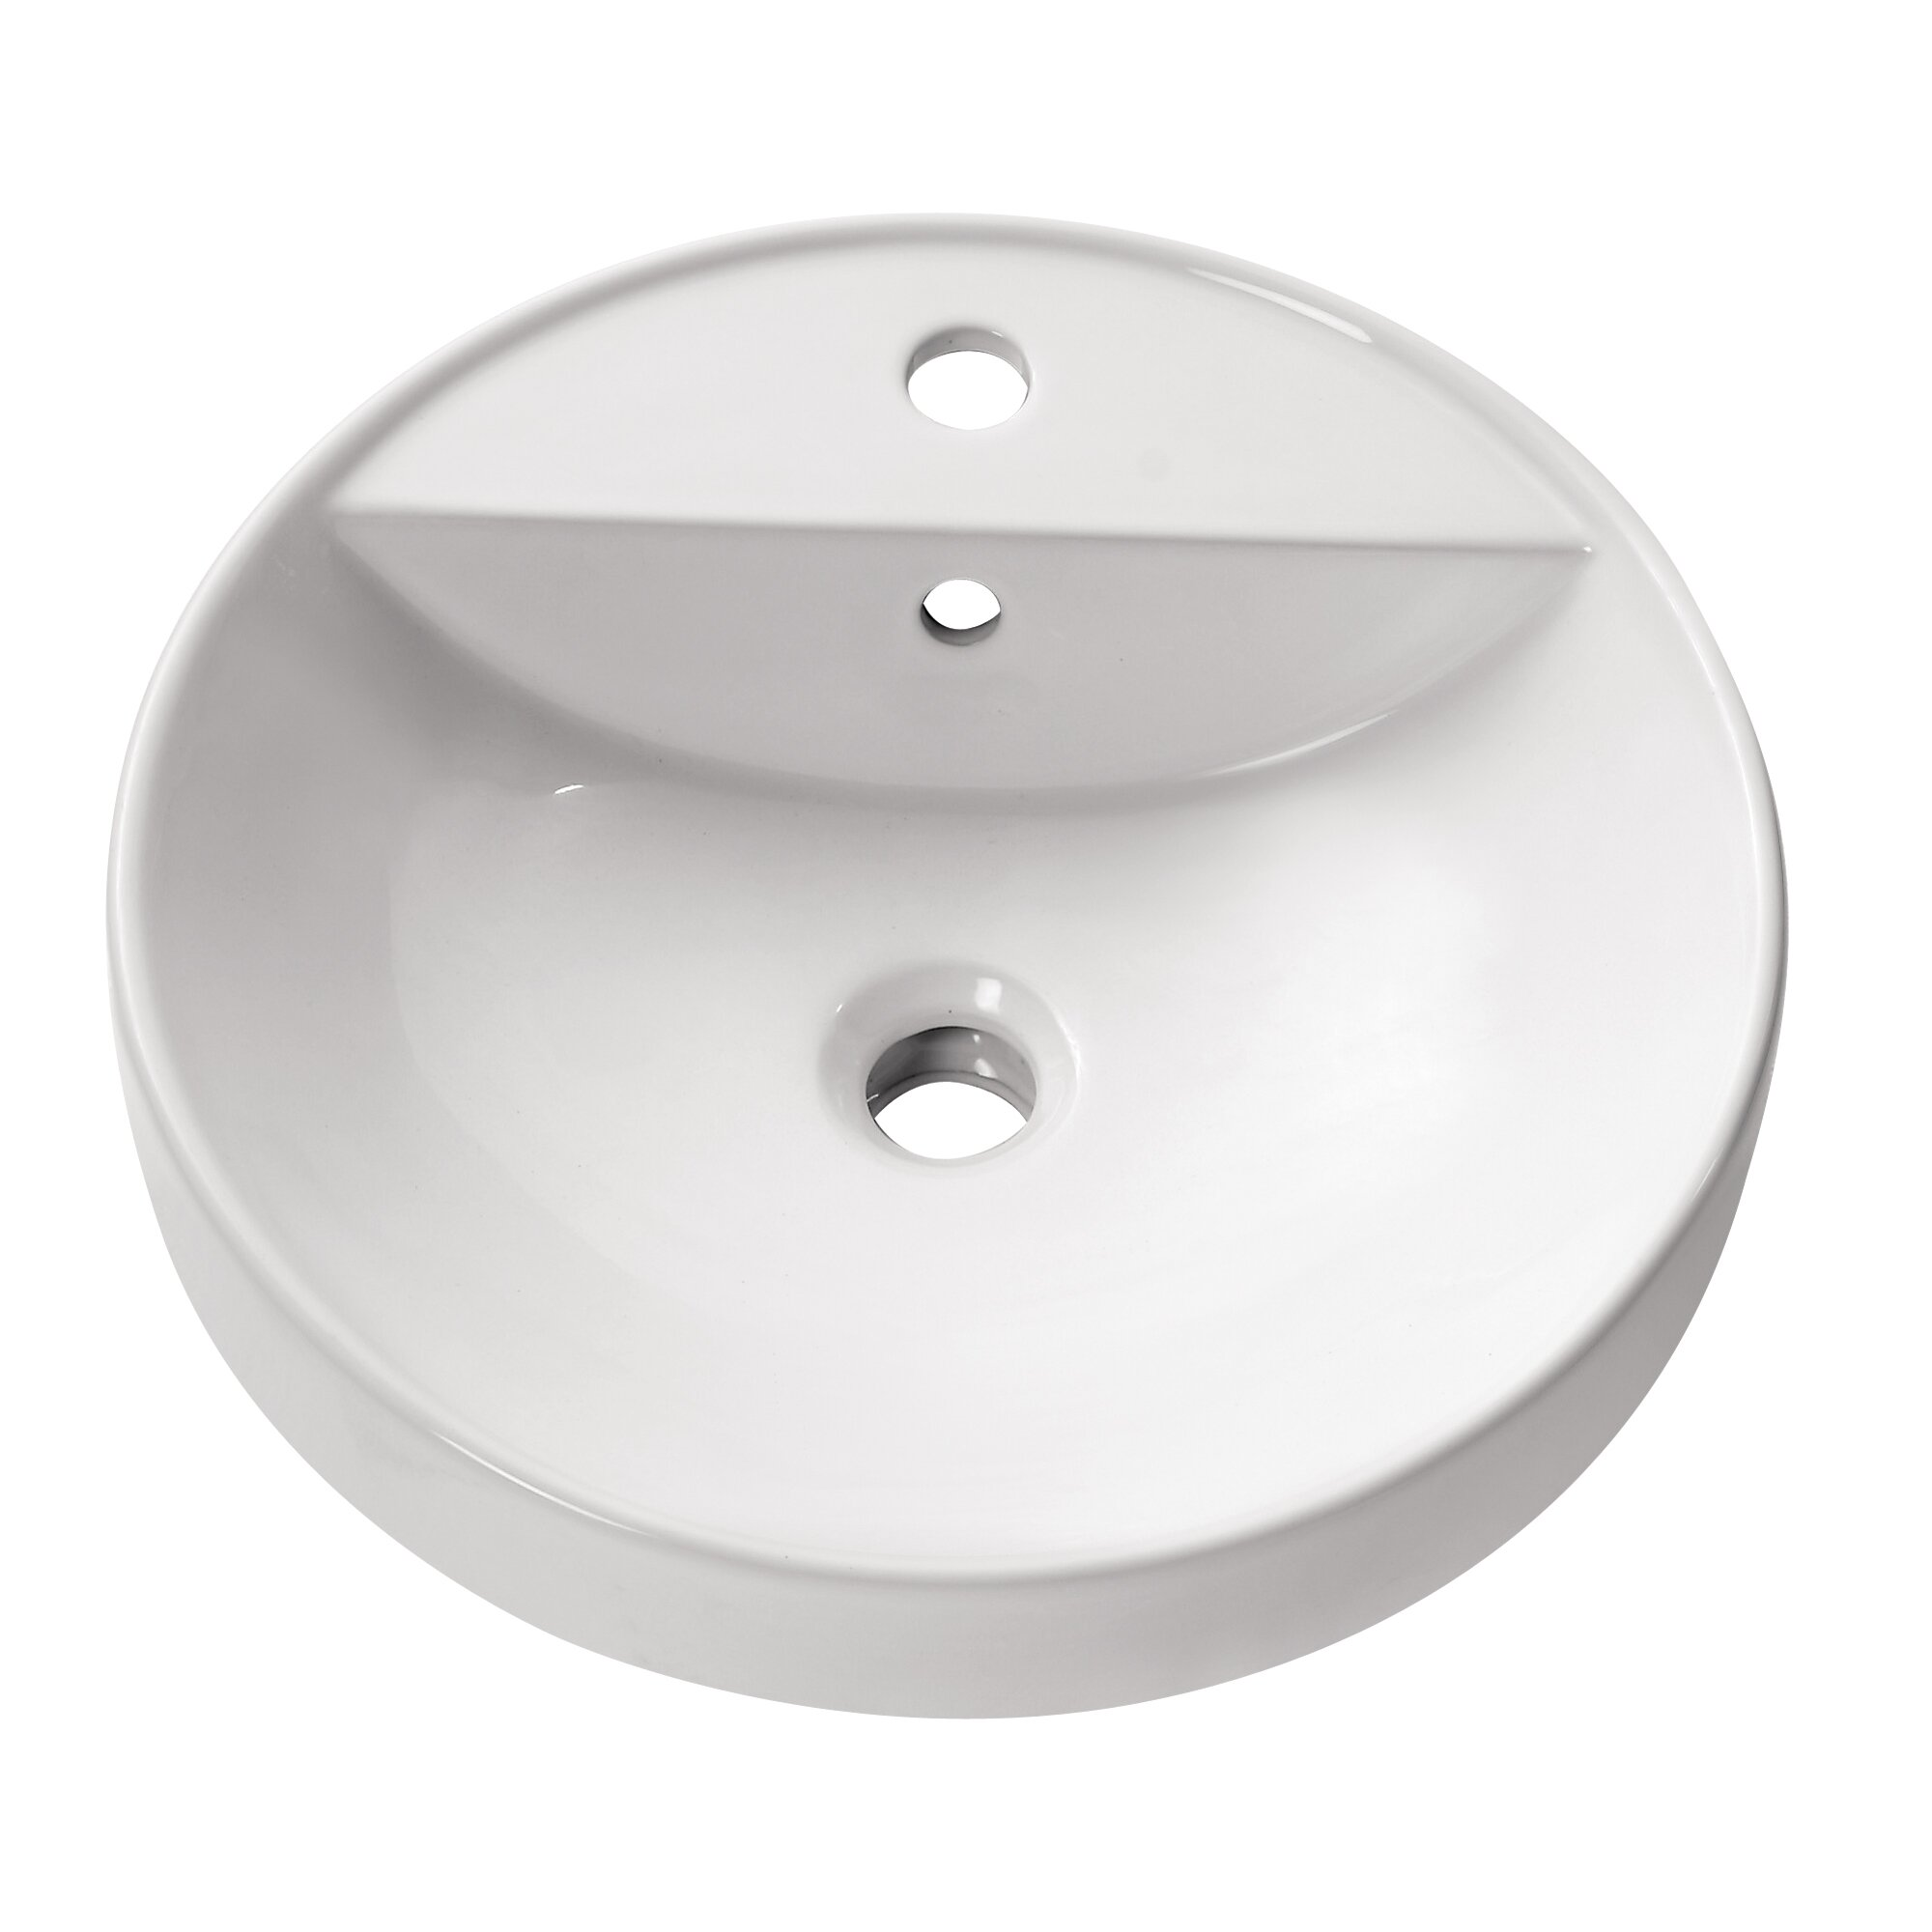 Recessed Bathroom Sink : Avanity Semi Recessed Bathroom Sink & Reviews Wayfair